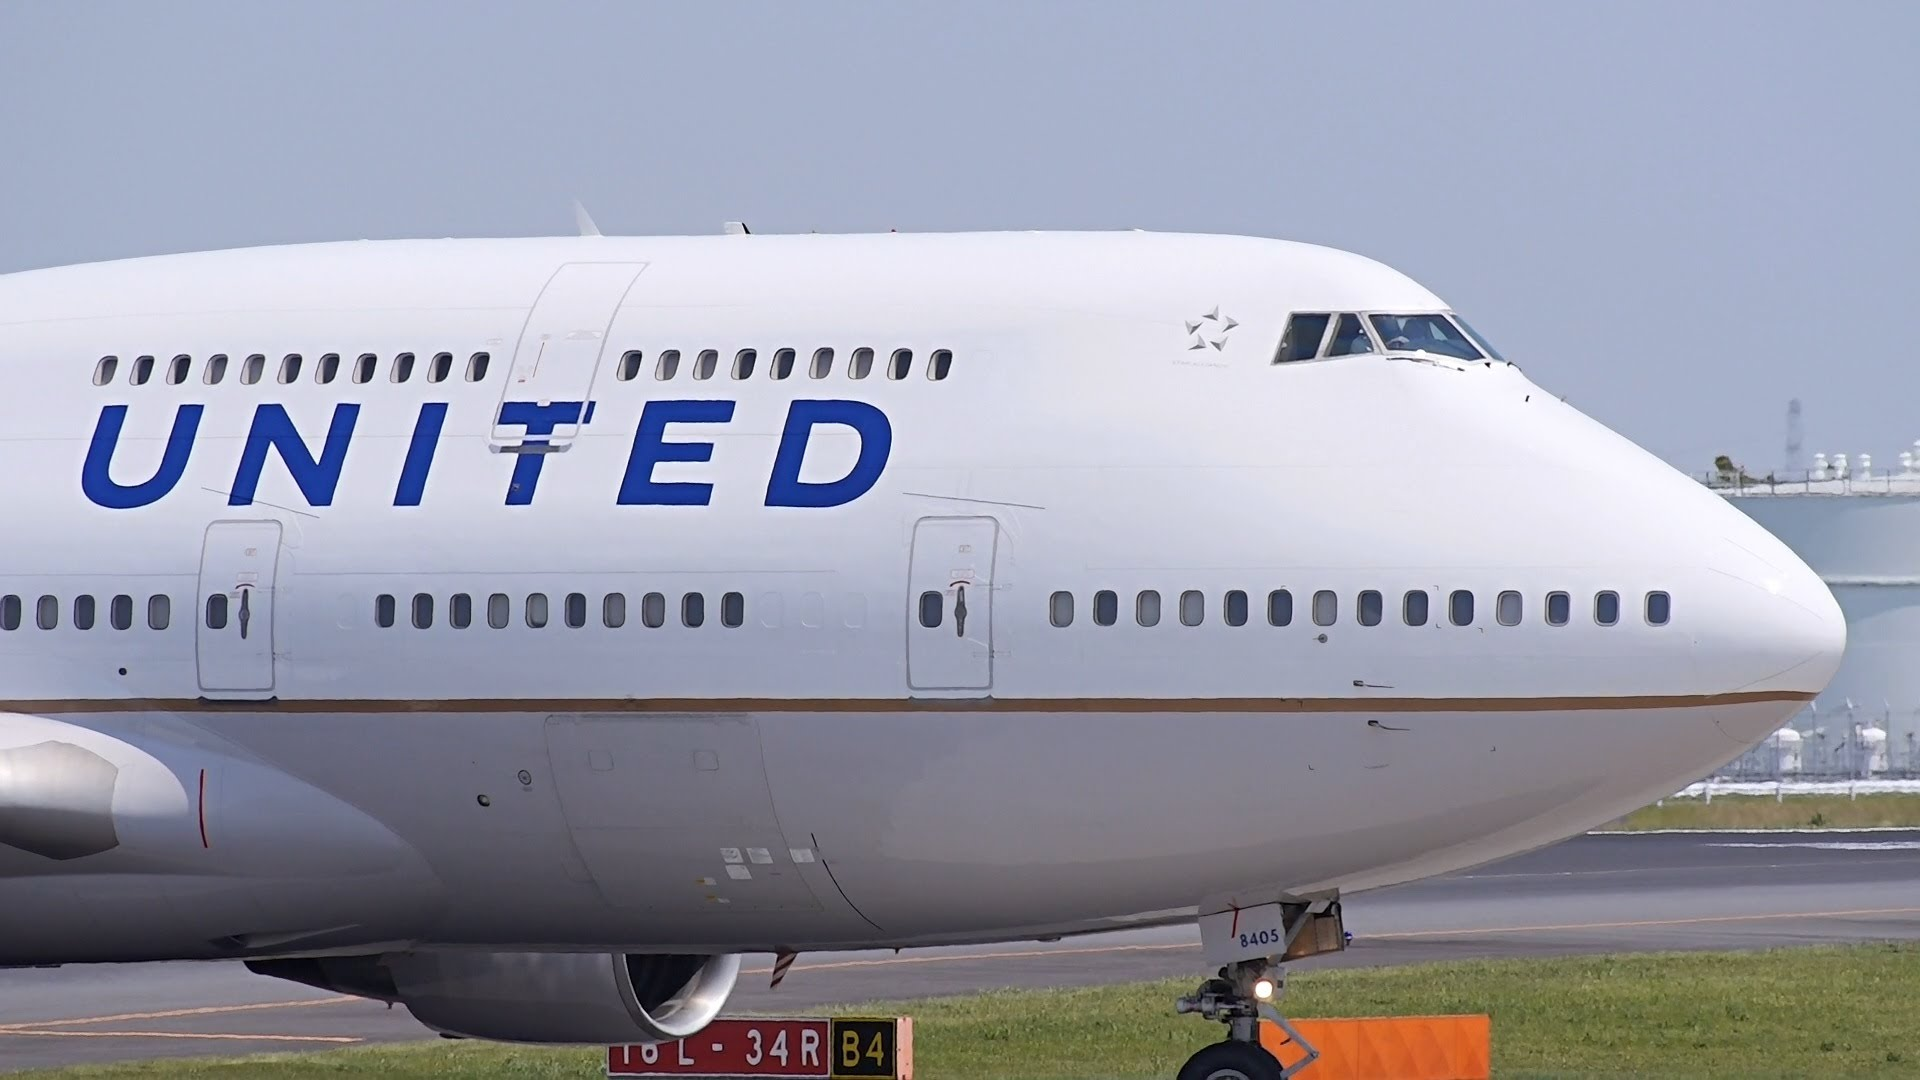 United Airlines Organises Special Flight to Bid Farewell to Boeing 747